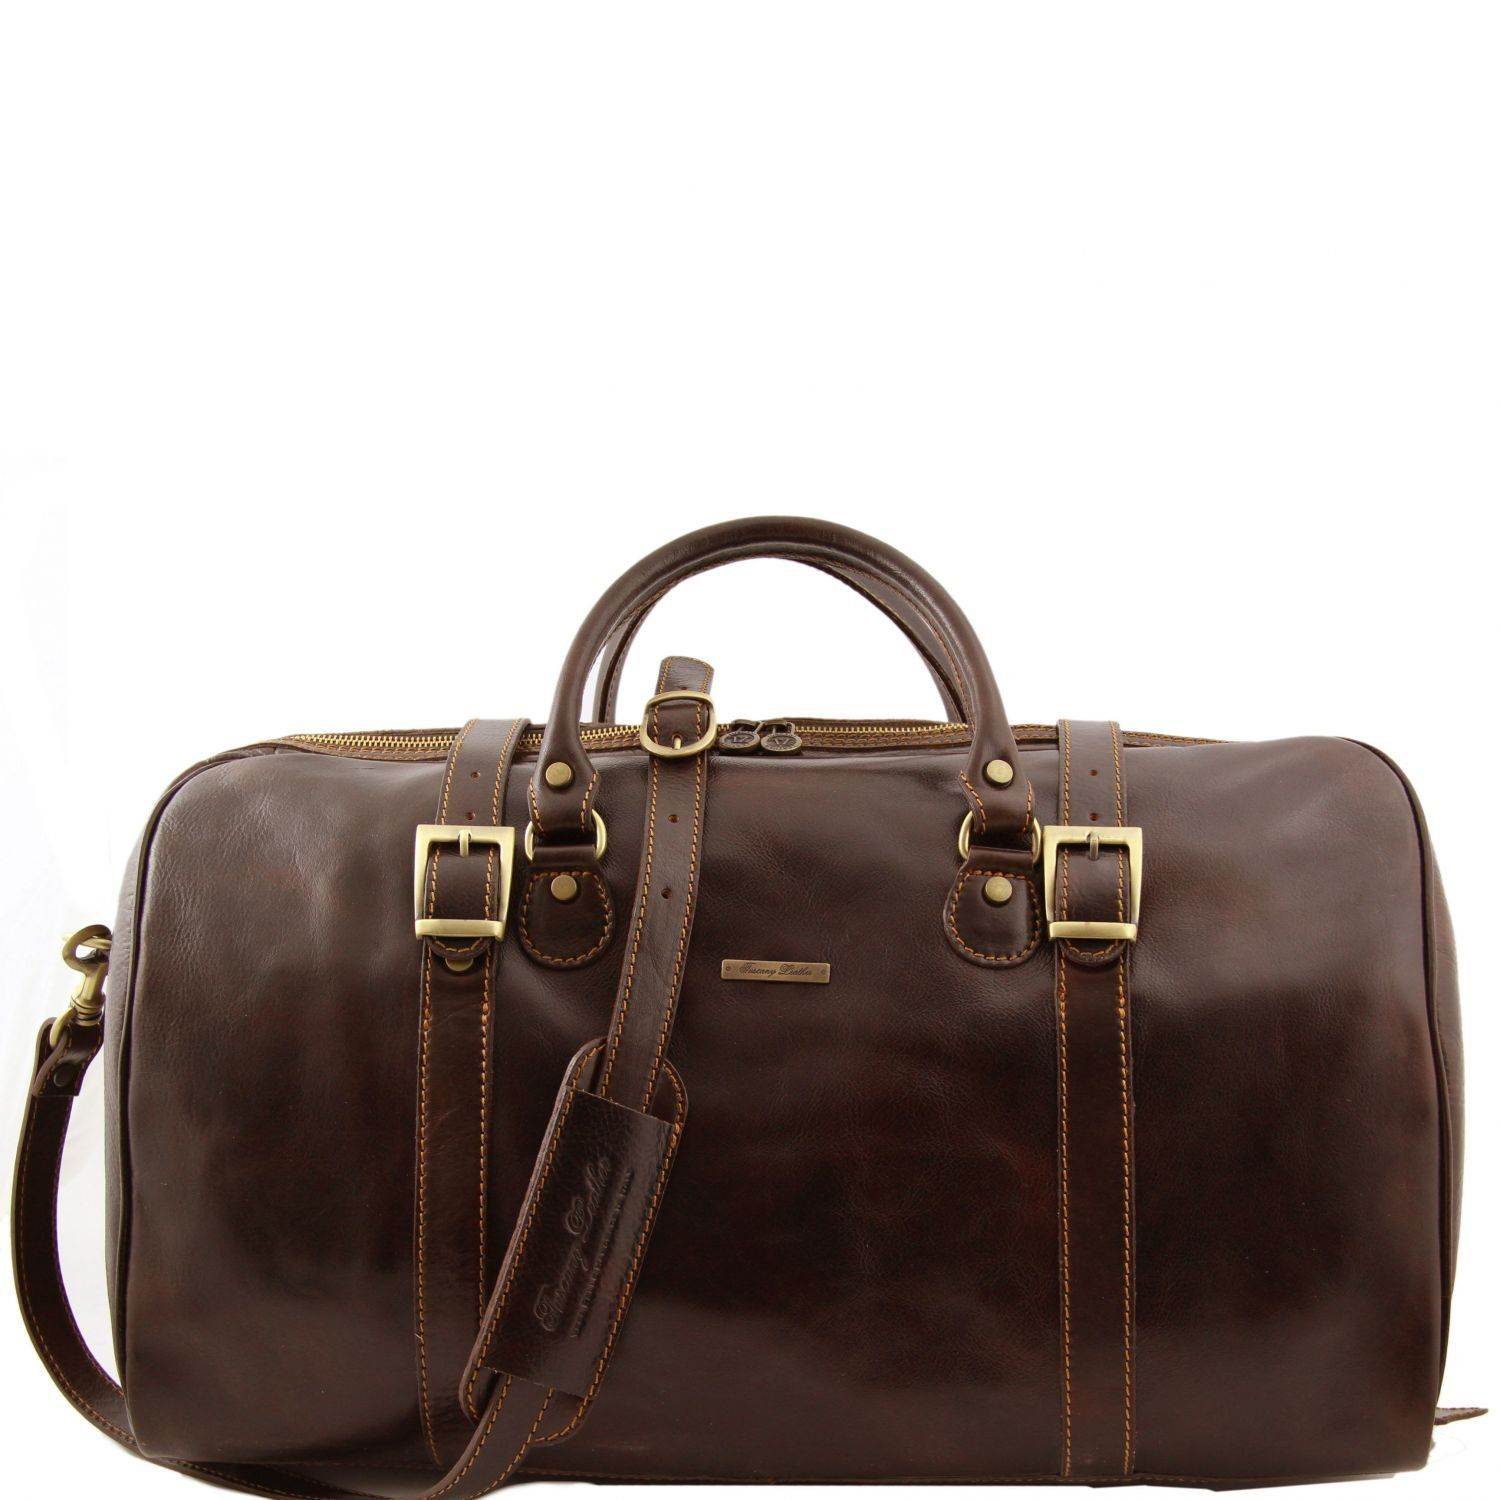 c896a4604295 Tuscany Leather Berlin Travel leather duffle bag Large size Dark Brown  TL1013 5     To view further for this item